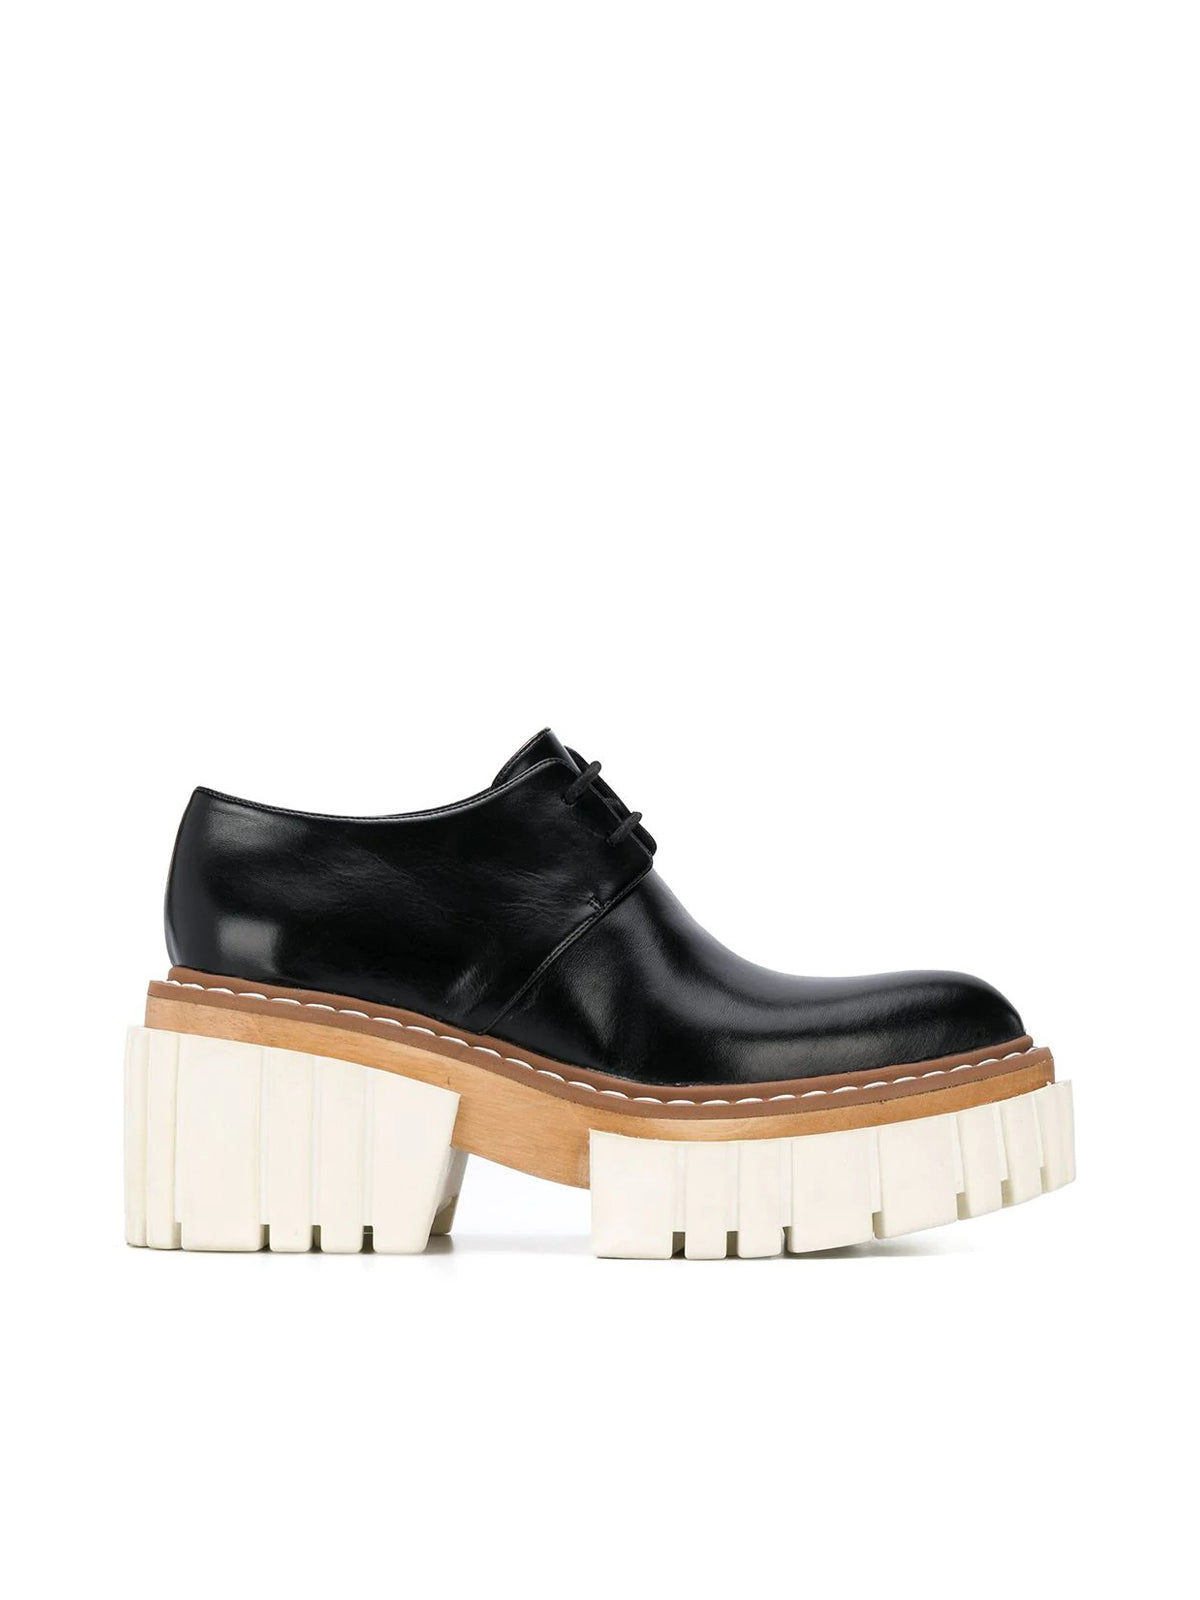 Elyse lace-ups with raised sole